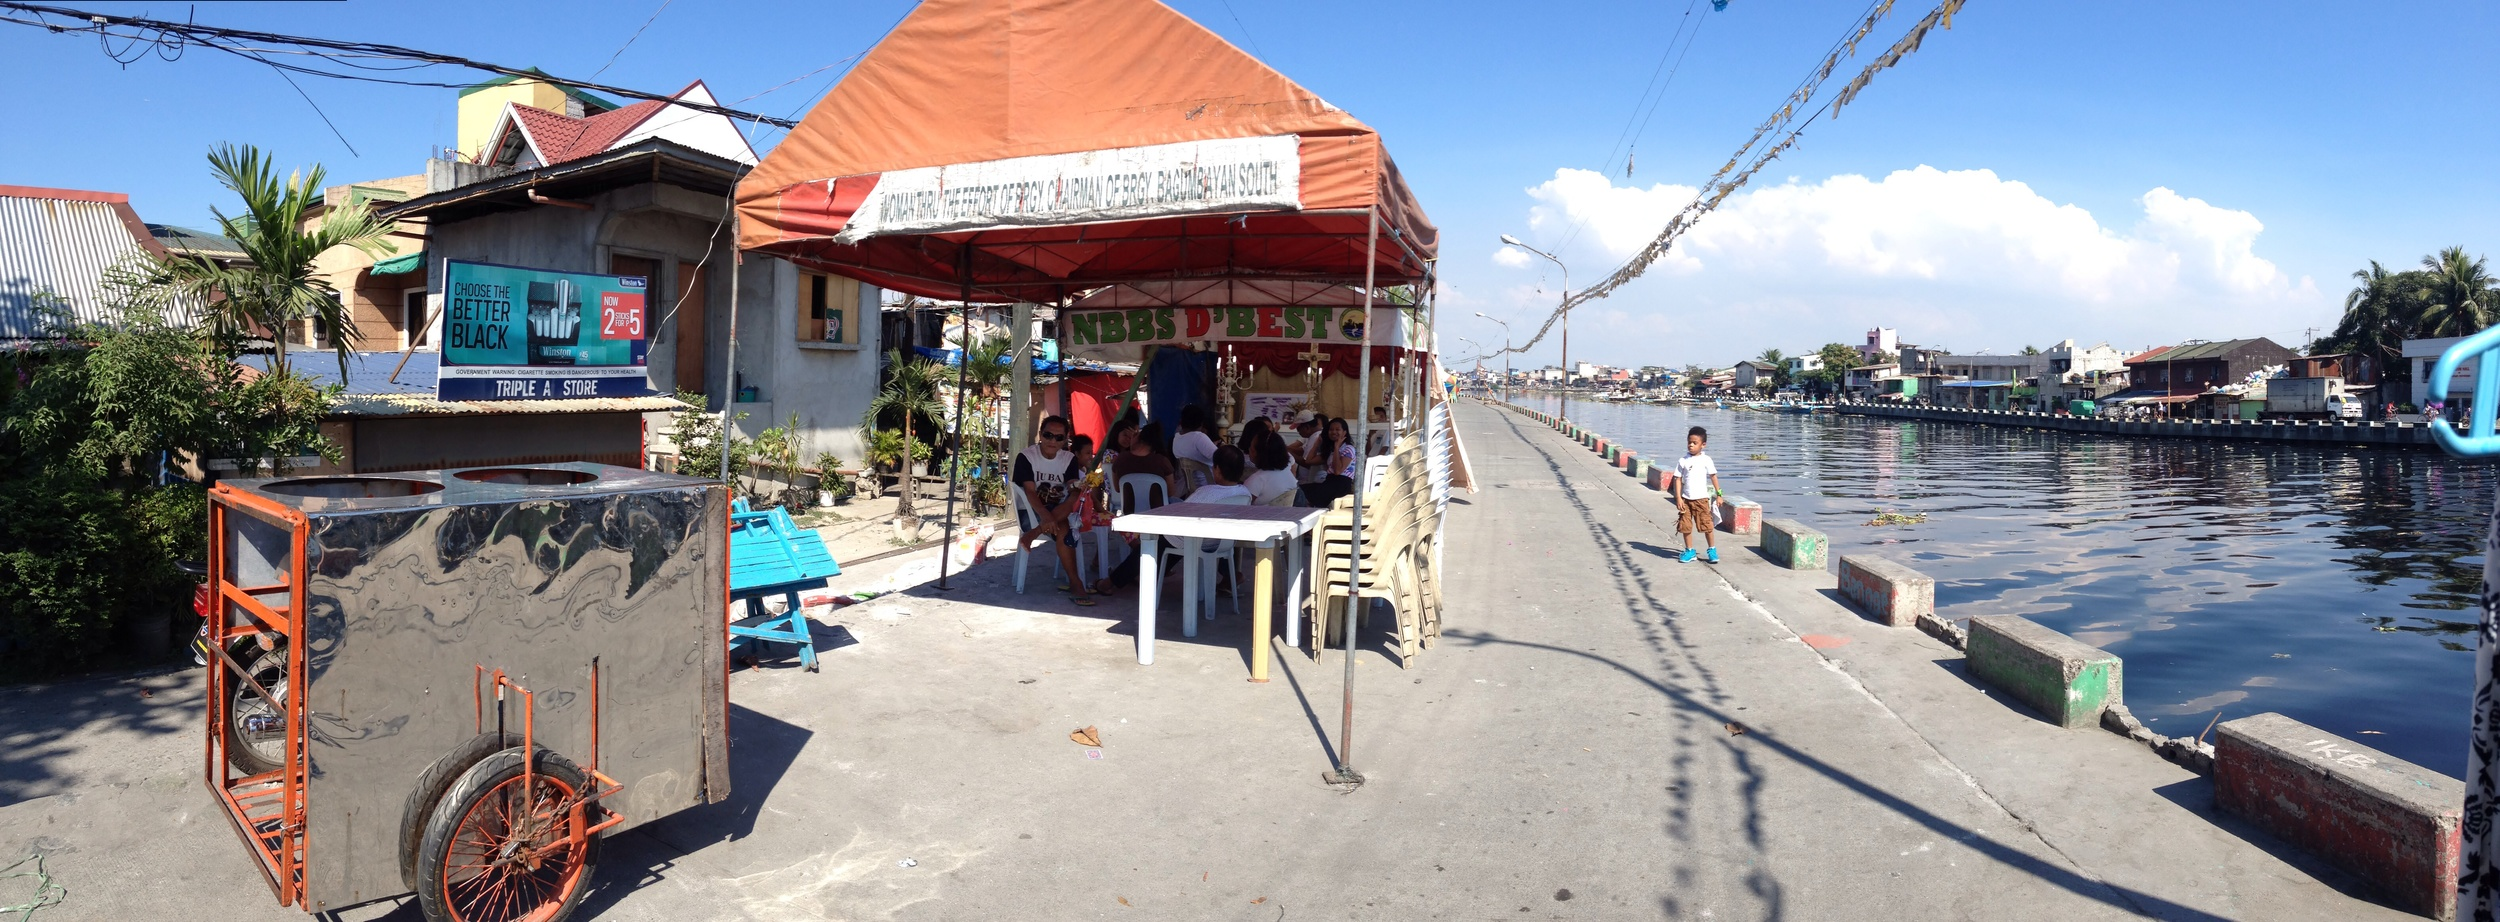 On both sides of the Navotas River the riverfront easement is wide and ideal for biking. Biking from the C-4 bridge to the Estrella bridge (where you can cross into Malabon) on the Navotas side I came across other tented events.